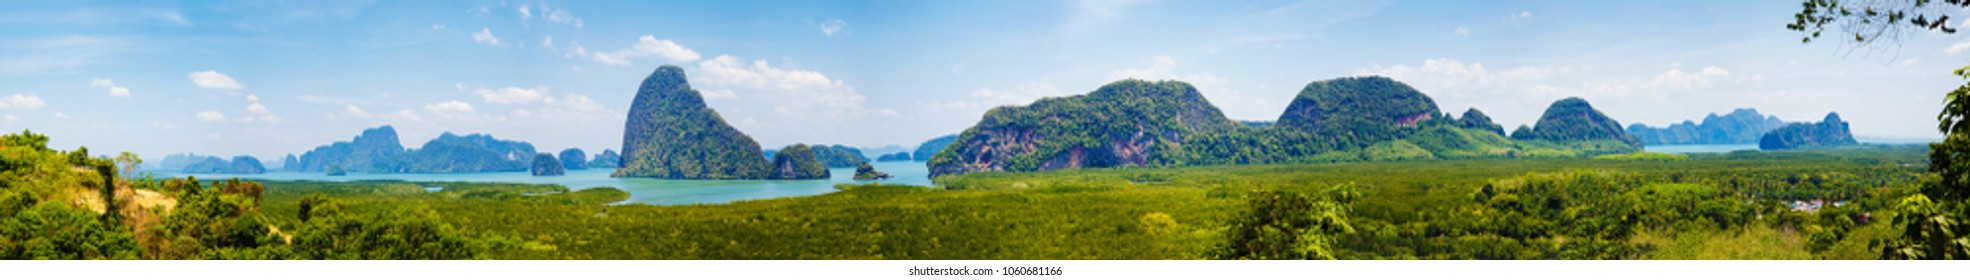 Tropical landscape a view of islands in Thailand